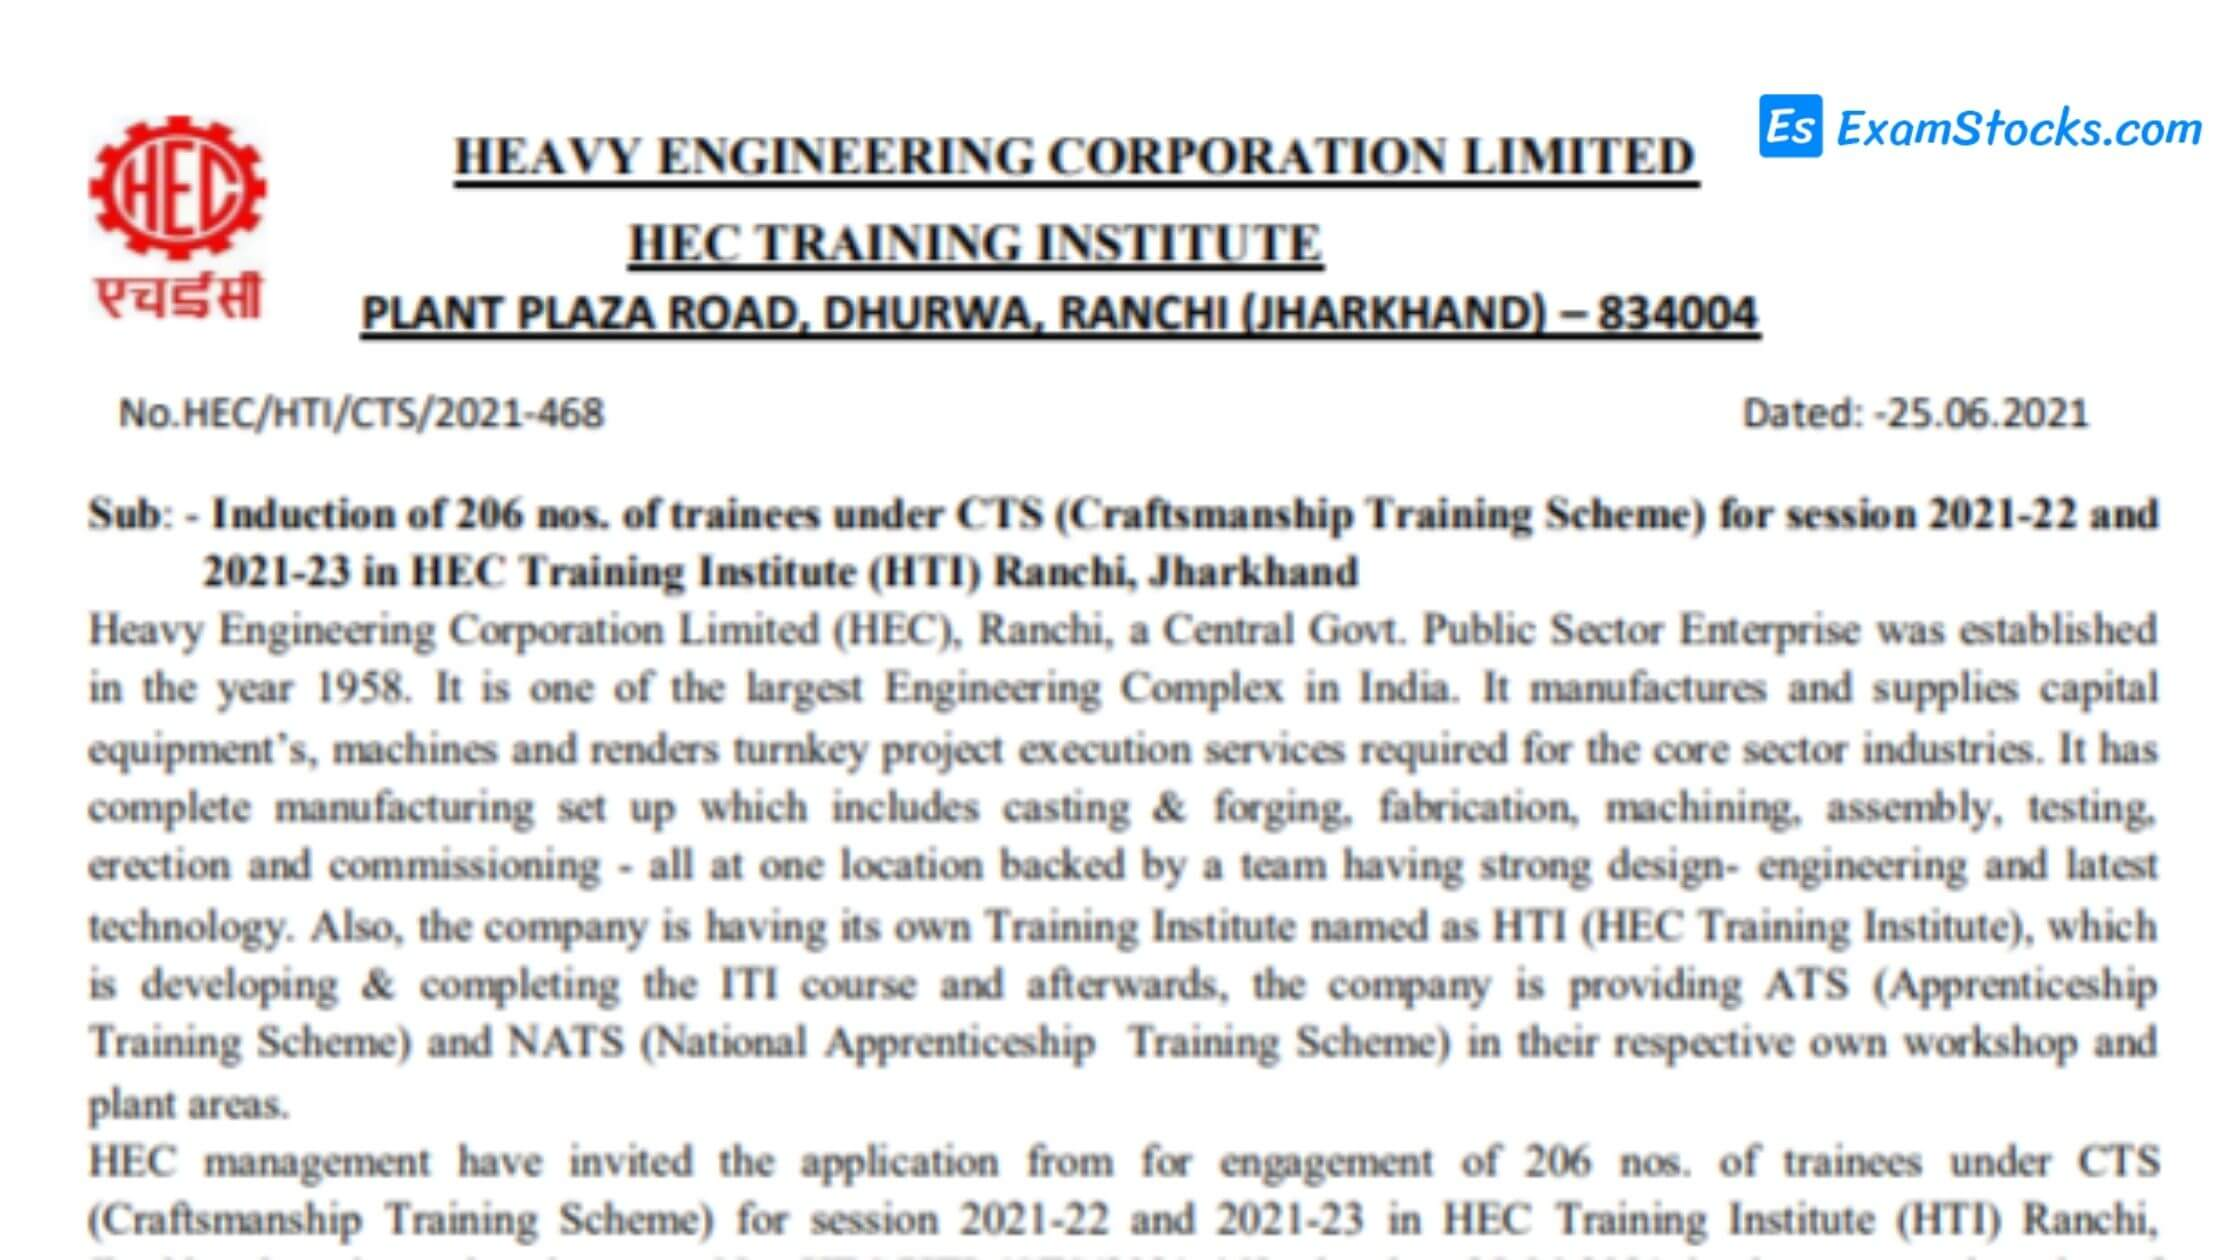 HEC Trainee Recruitment 2021 Apply For 206 Trainees Post